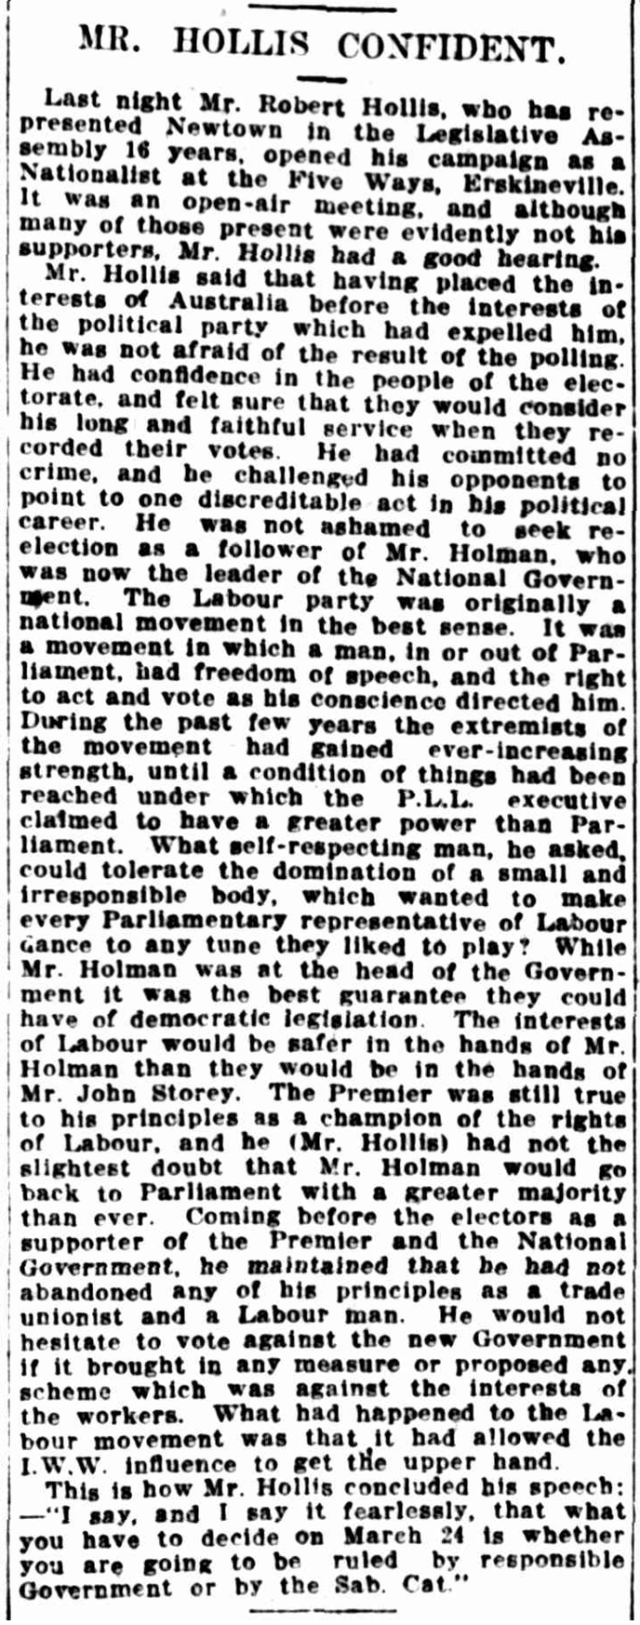 Robert Hollis 1917 Legislative Assembly campaign opening